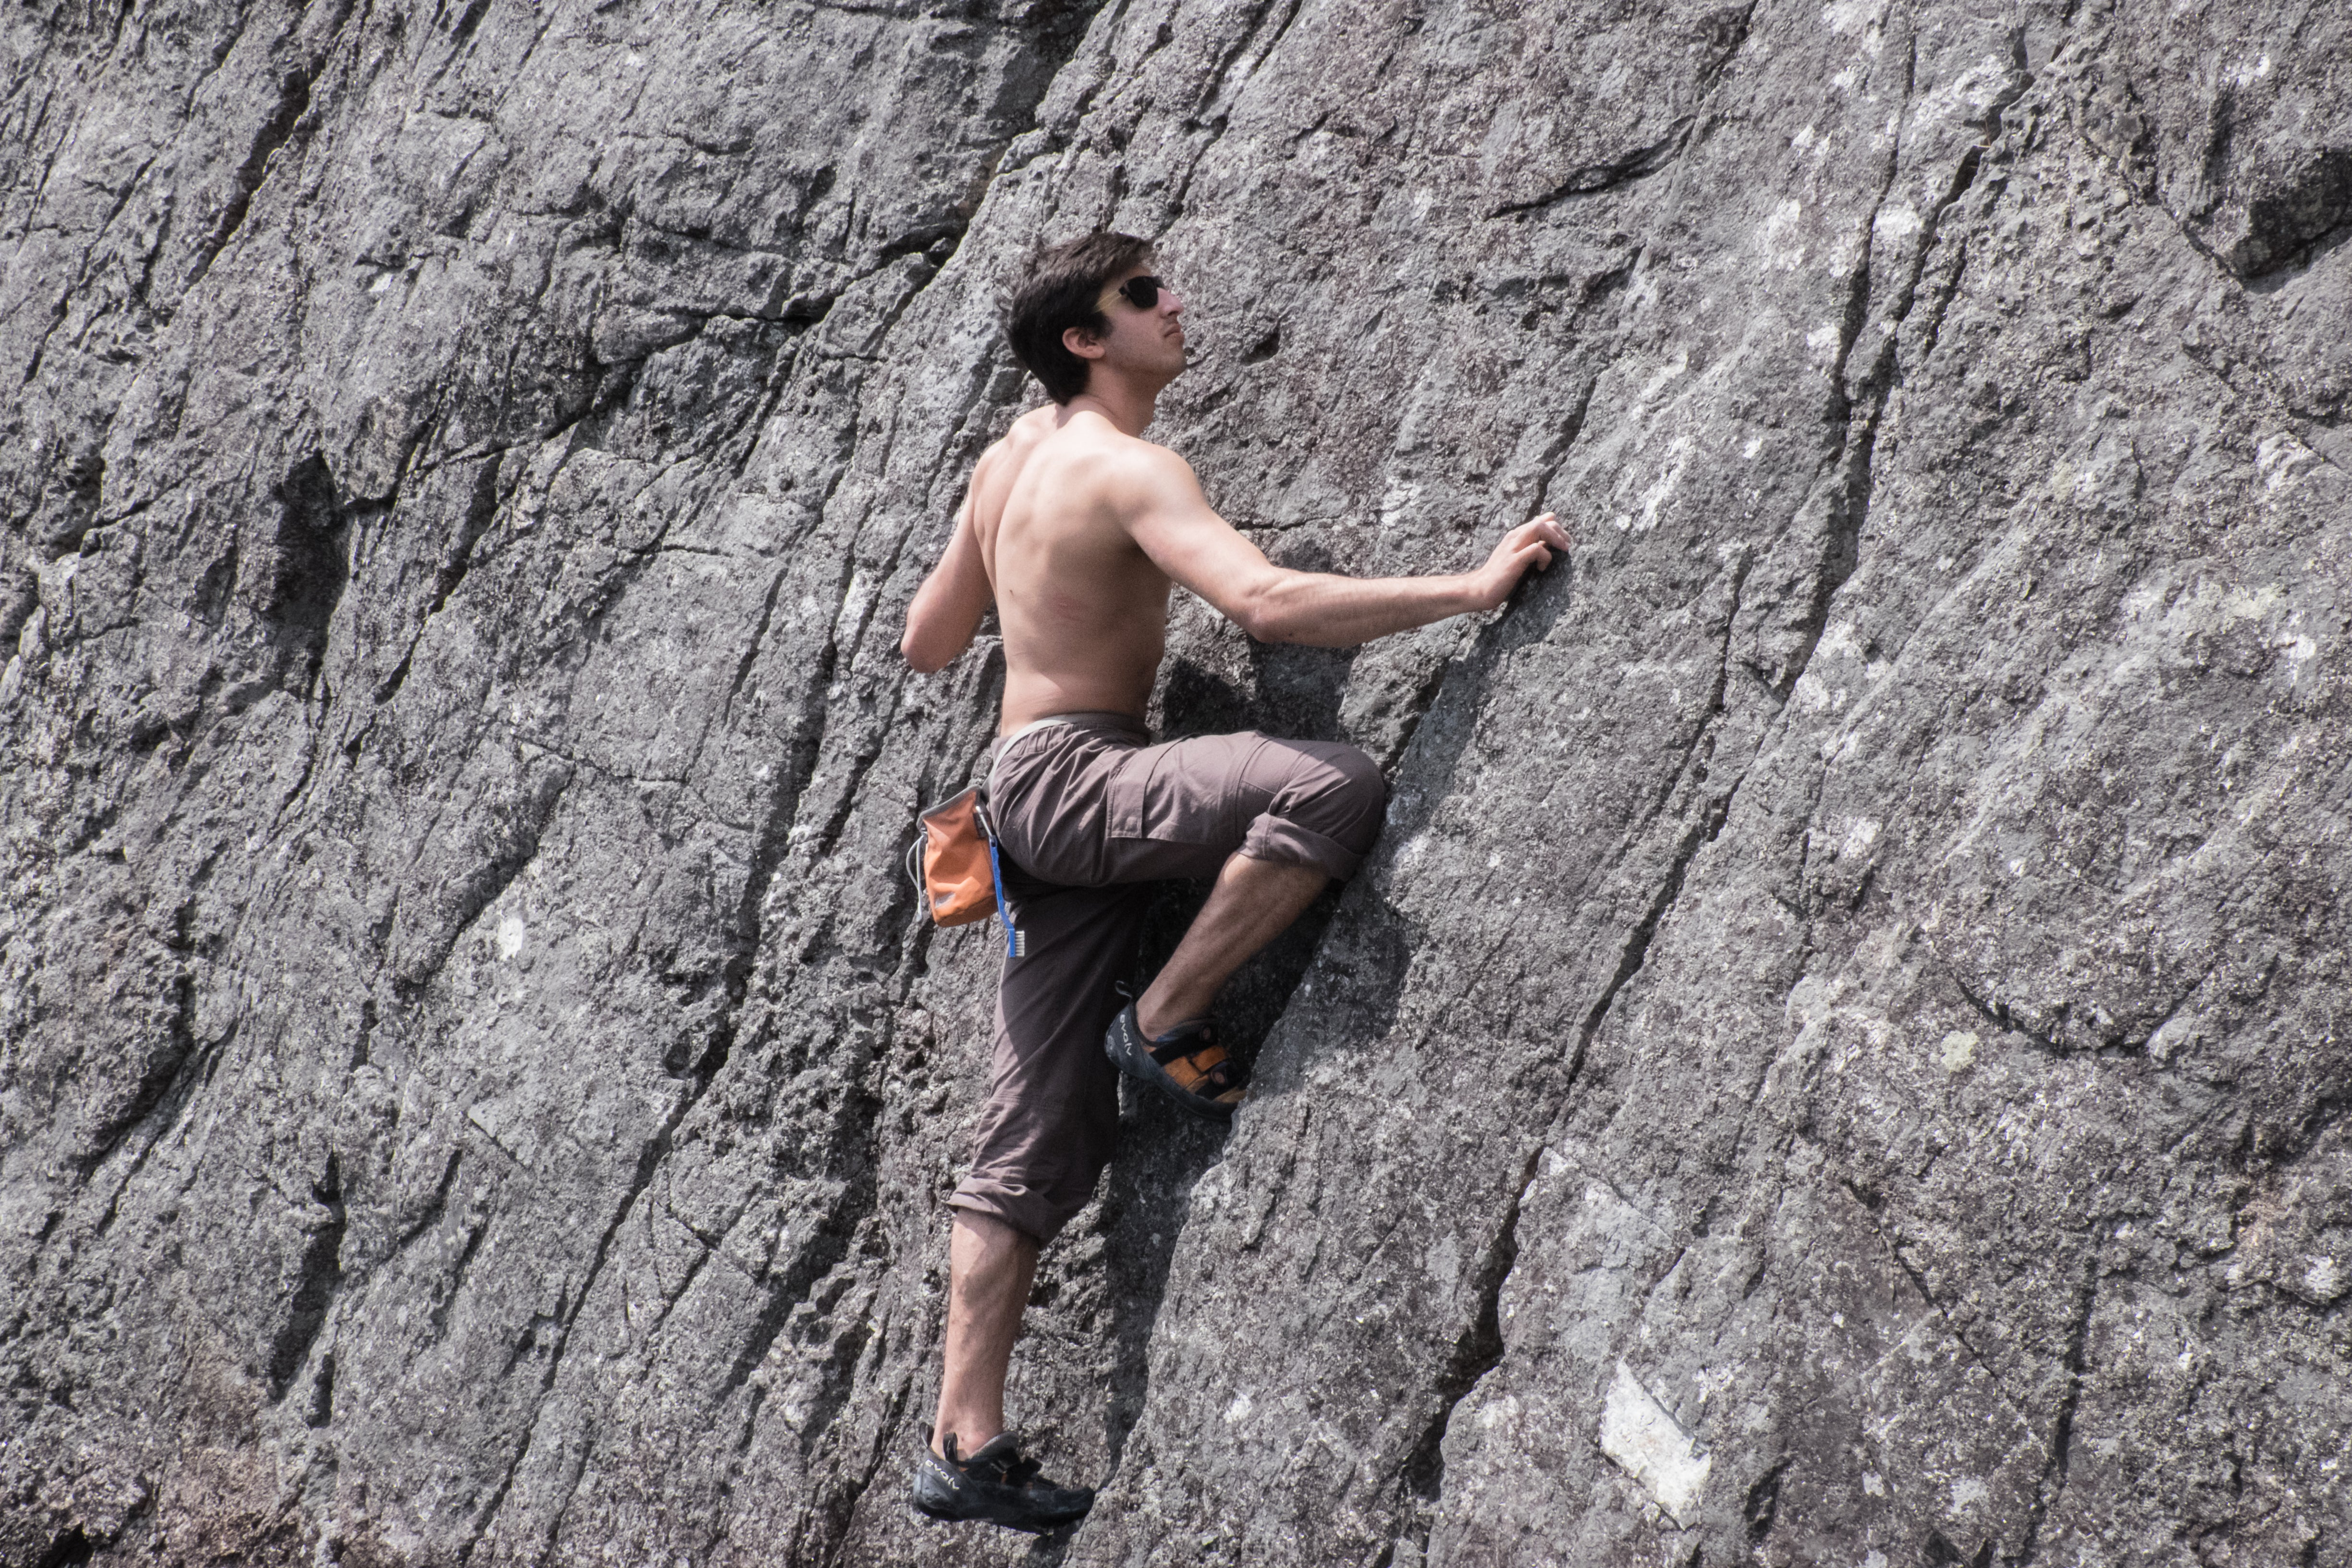 How To Climb Big Cliffs Without Ropes And Not Die